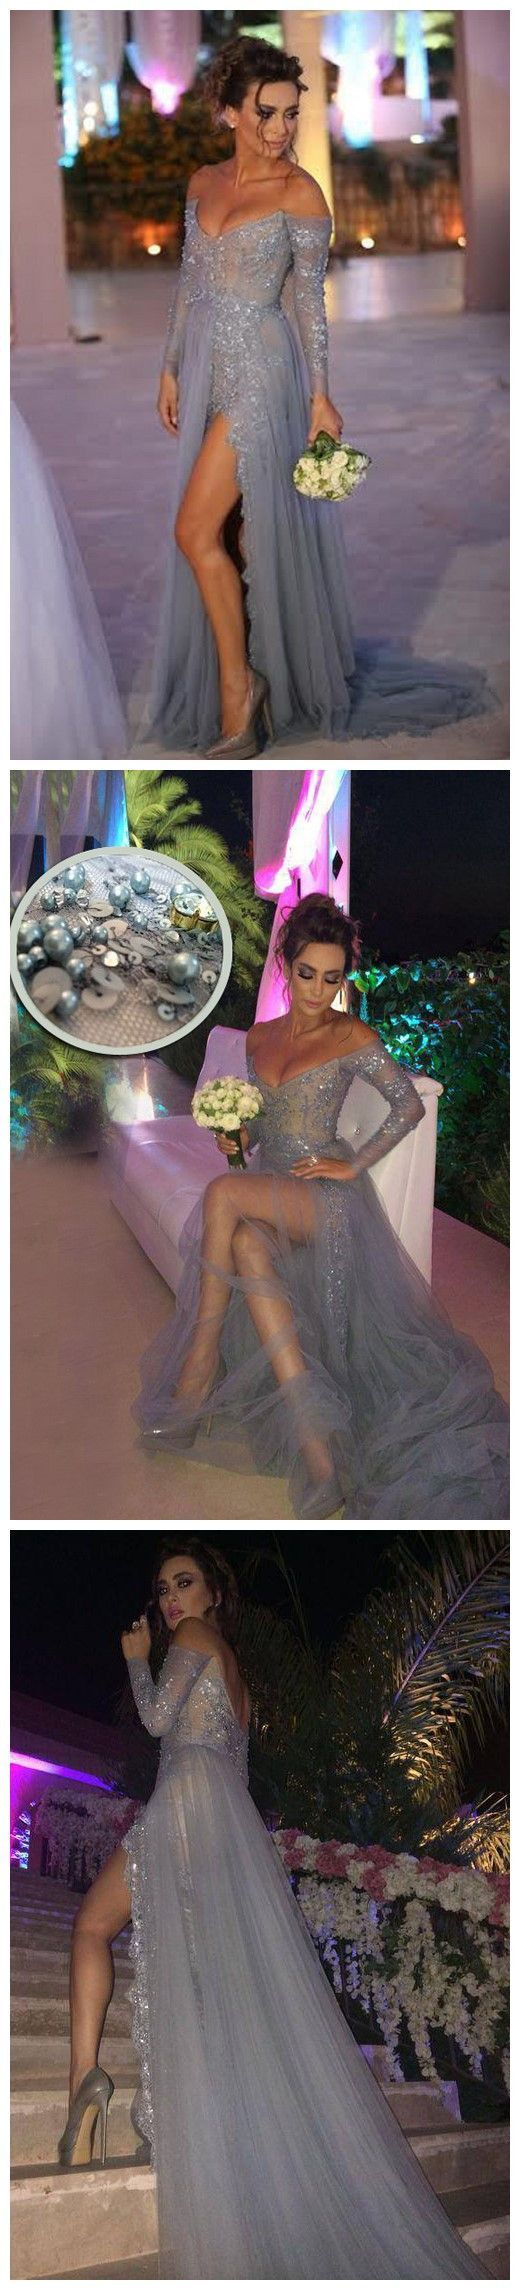 Prom dress,Prom dress 2016,Grey prom dress,lace prom dress,Long sleeves prom dress,Beaded prom dress,Beading prom dress,